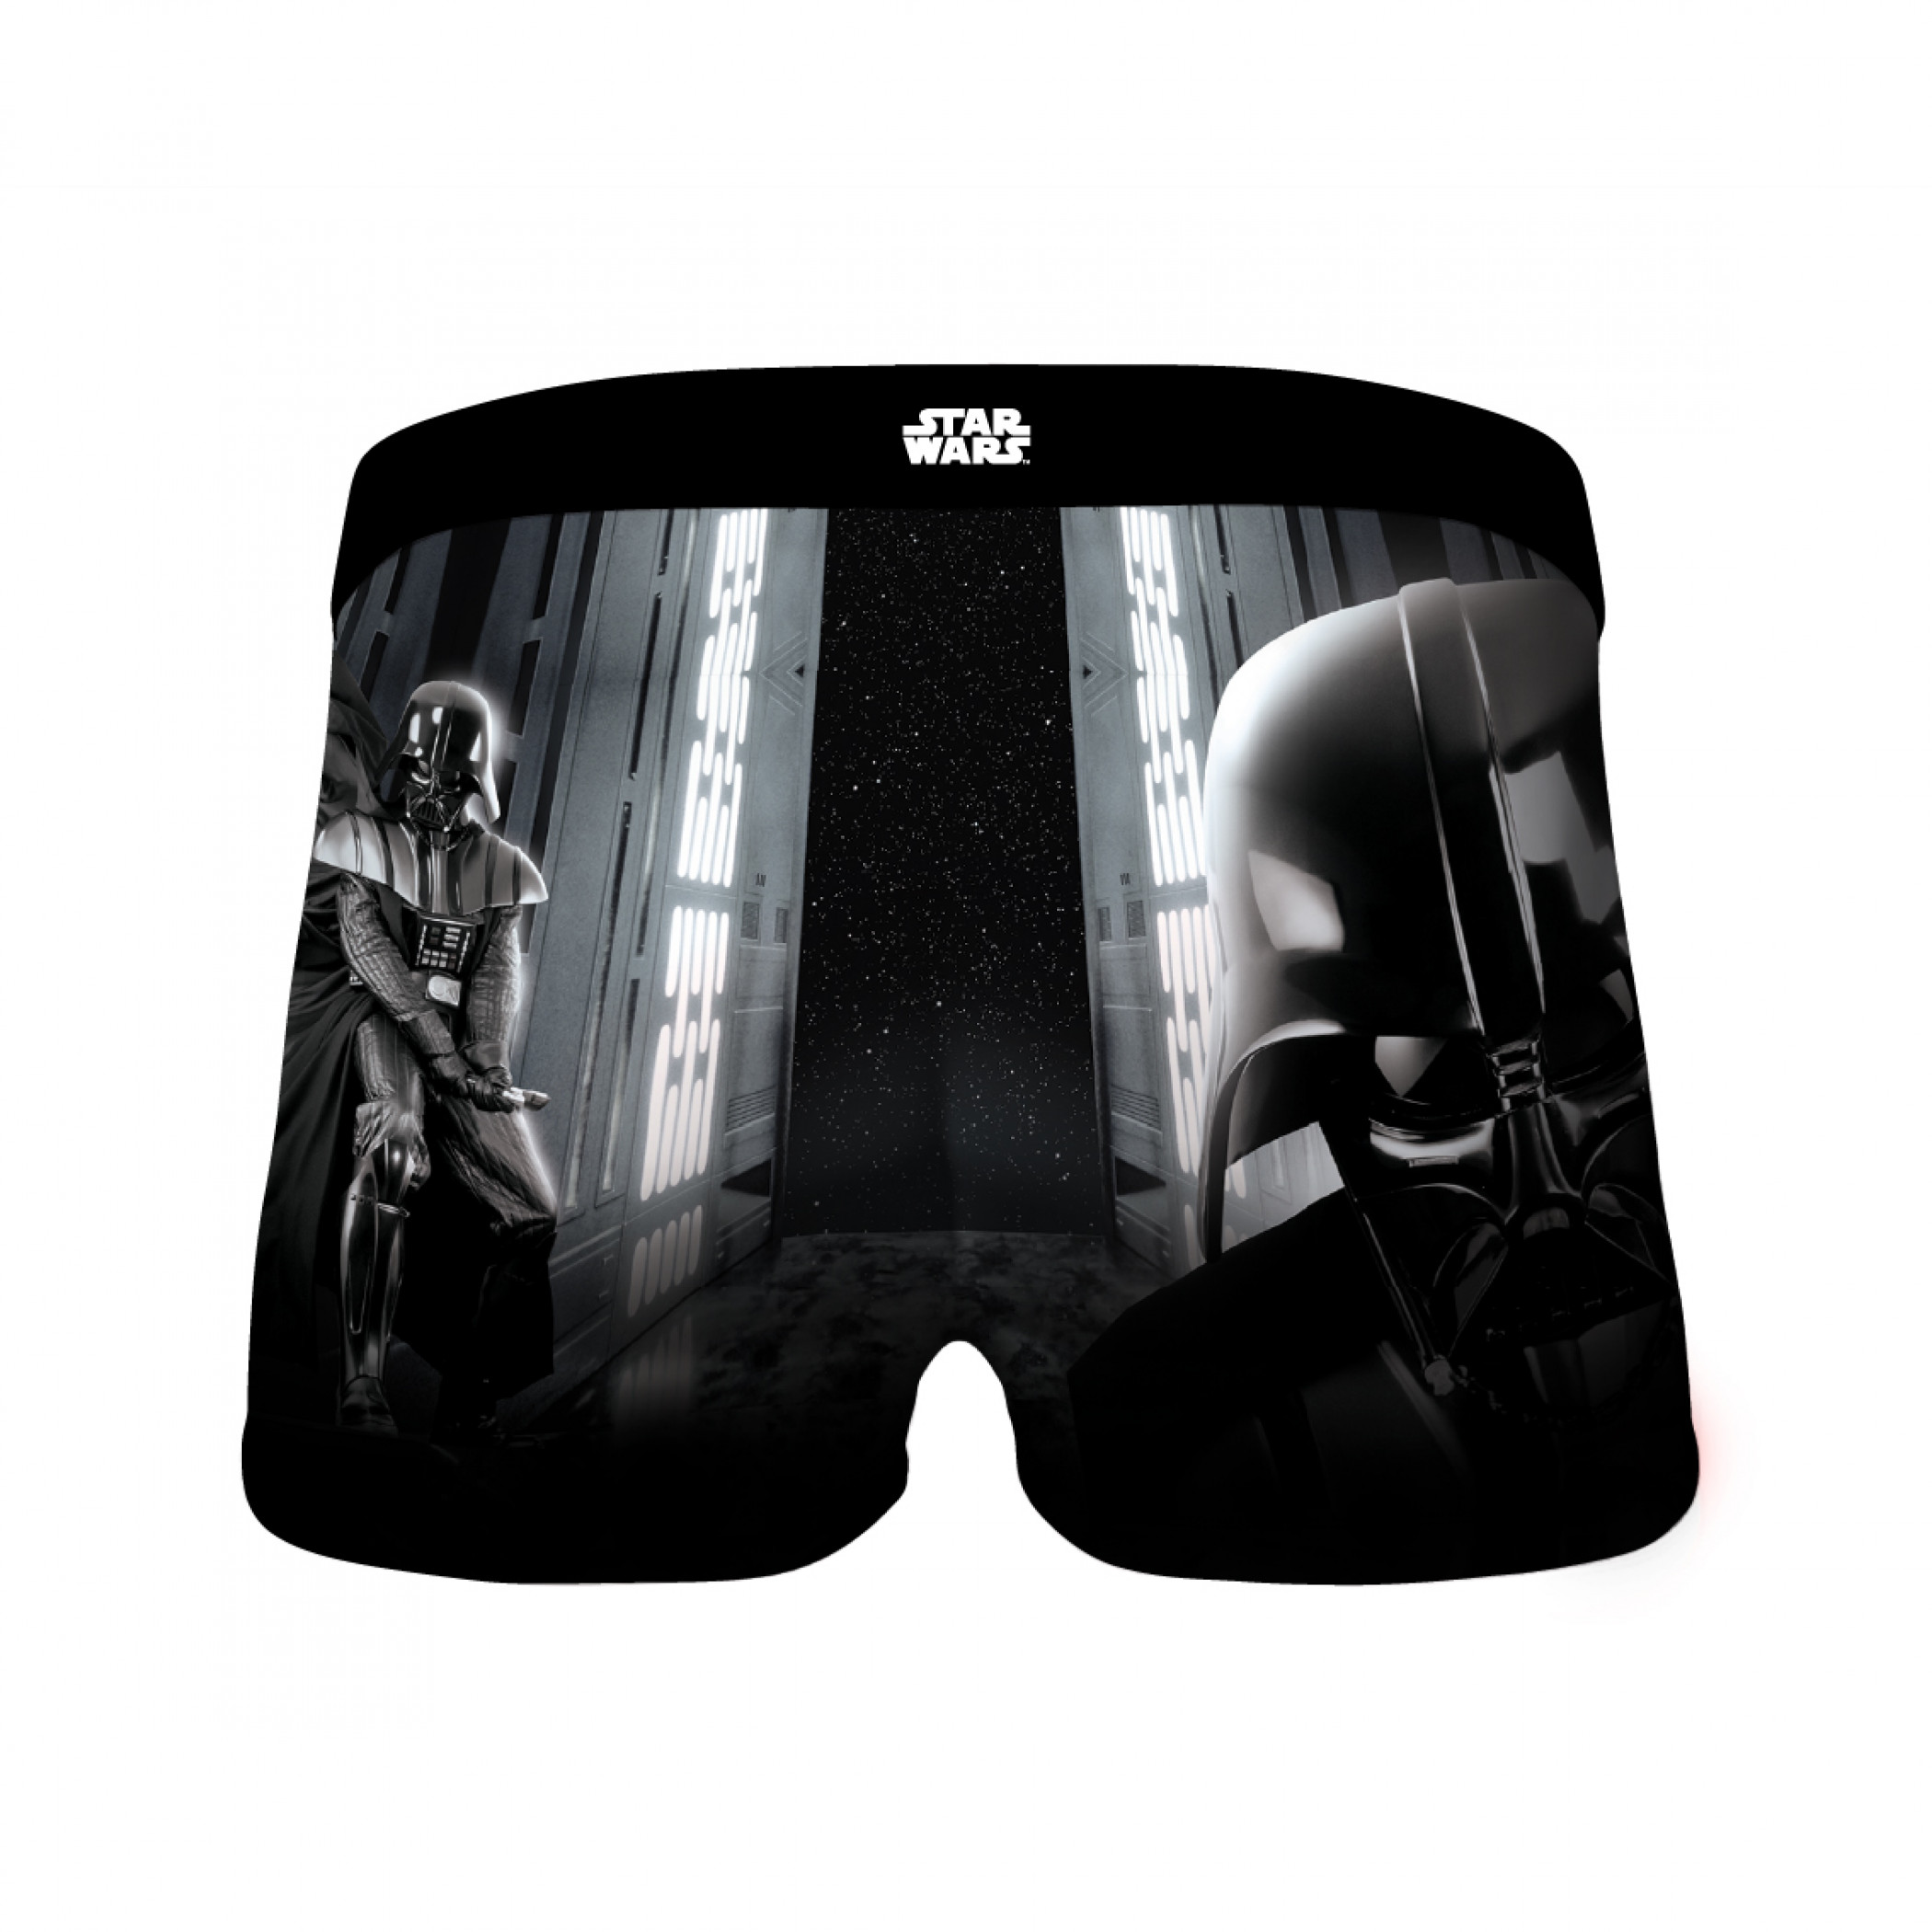 Star Wars Sith Lord Darth Vader Men's Crazy Boxer Briefs